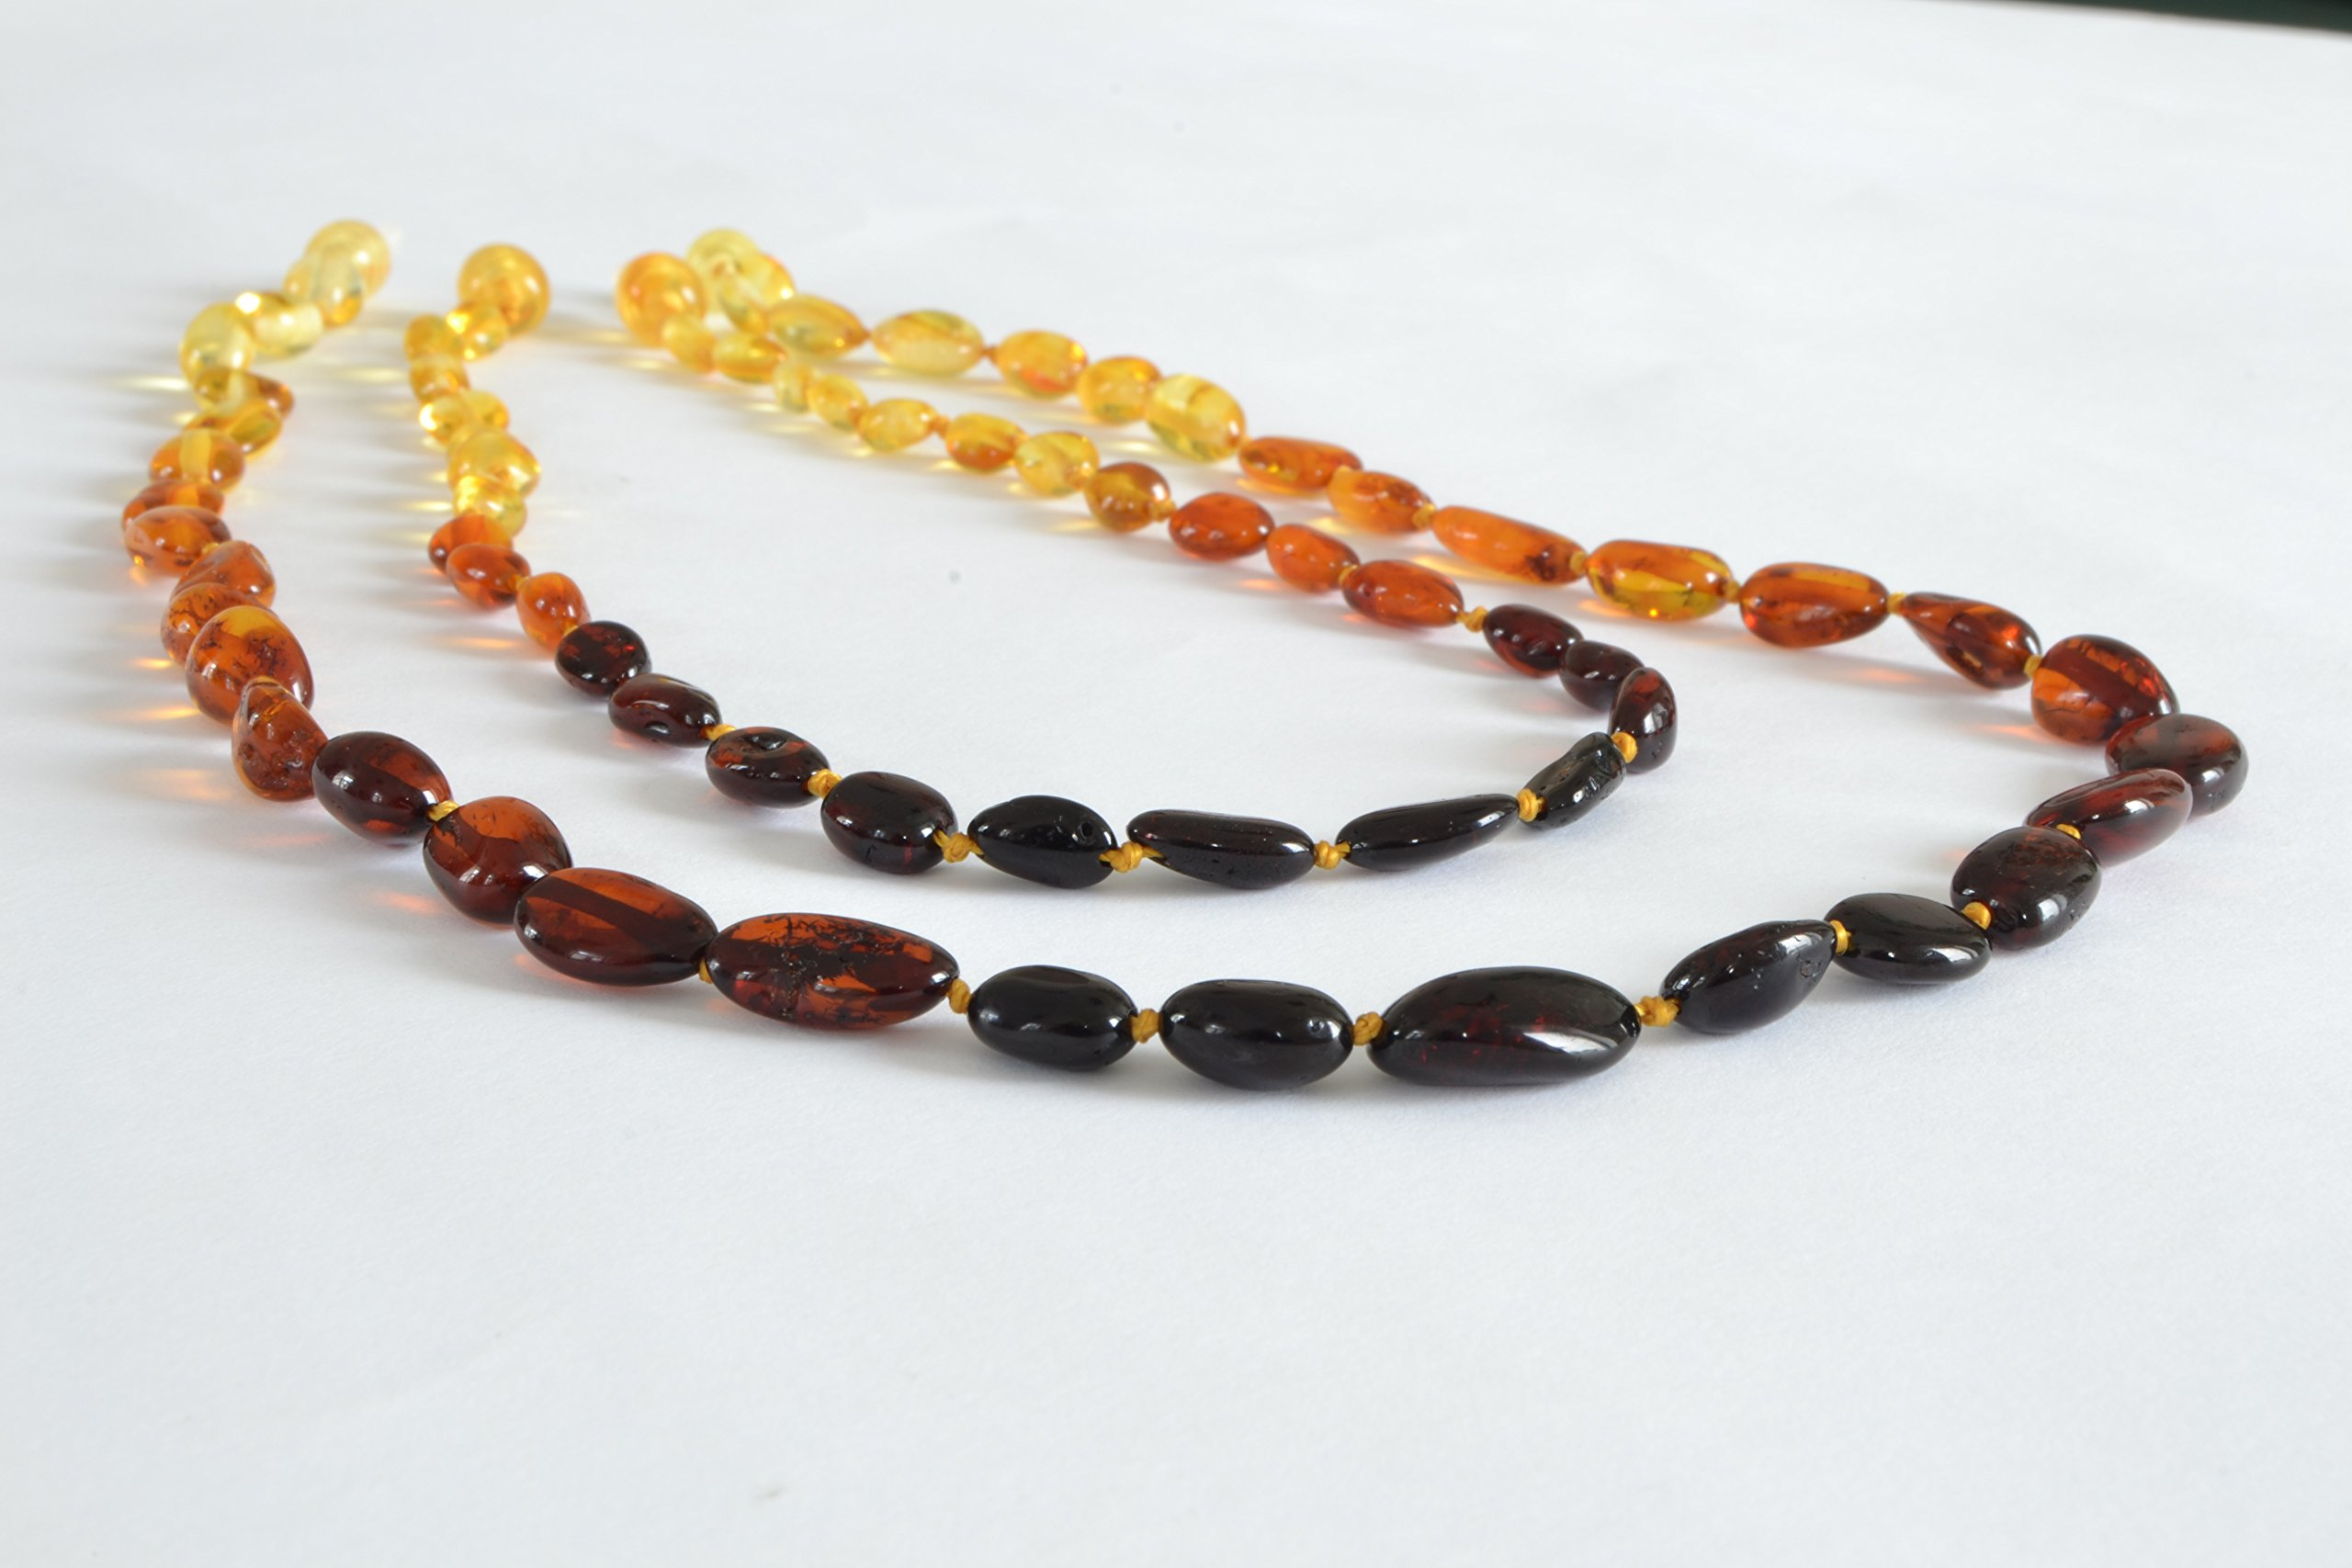 The Art of Cure Original Baltic Amber Necklace set for Mom & Child - Polished Handmade (RAINBOW BEAN) Unisex - 17in & 12.5 Inches by The Art of Cure